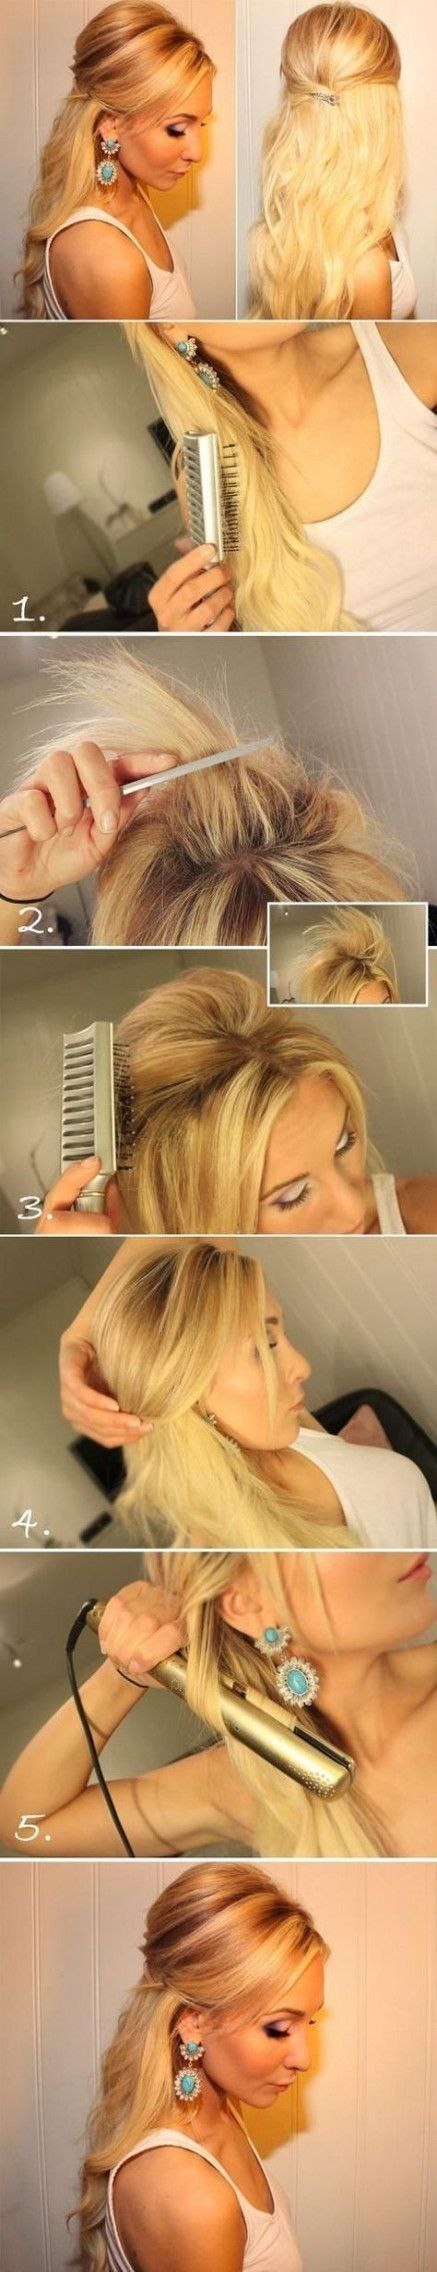 Wedding Hairstyles To The Side Straight Curls 44+ Ideas, #curls #Hairstyles #Ideas #side #St